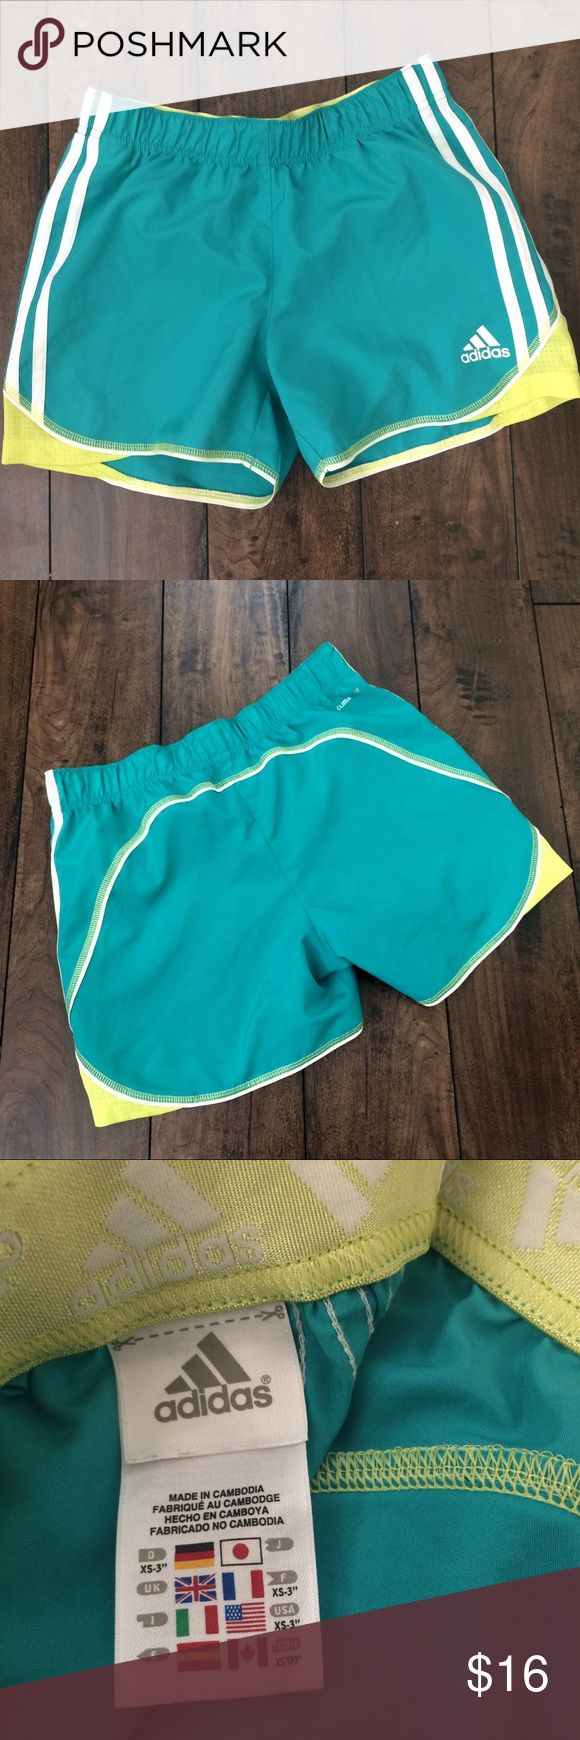 """Adidas Climalite Teal Shorts Lightweight and beautiful color combo of teal/white/chartreuse shorts make these perfect for a quick workout. No pockets on these shorts and they are made from 100% polyester. Measurements laying flat are approximately 13"""" waistband and 12"""" length laying flat. Adidas Shorts"""